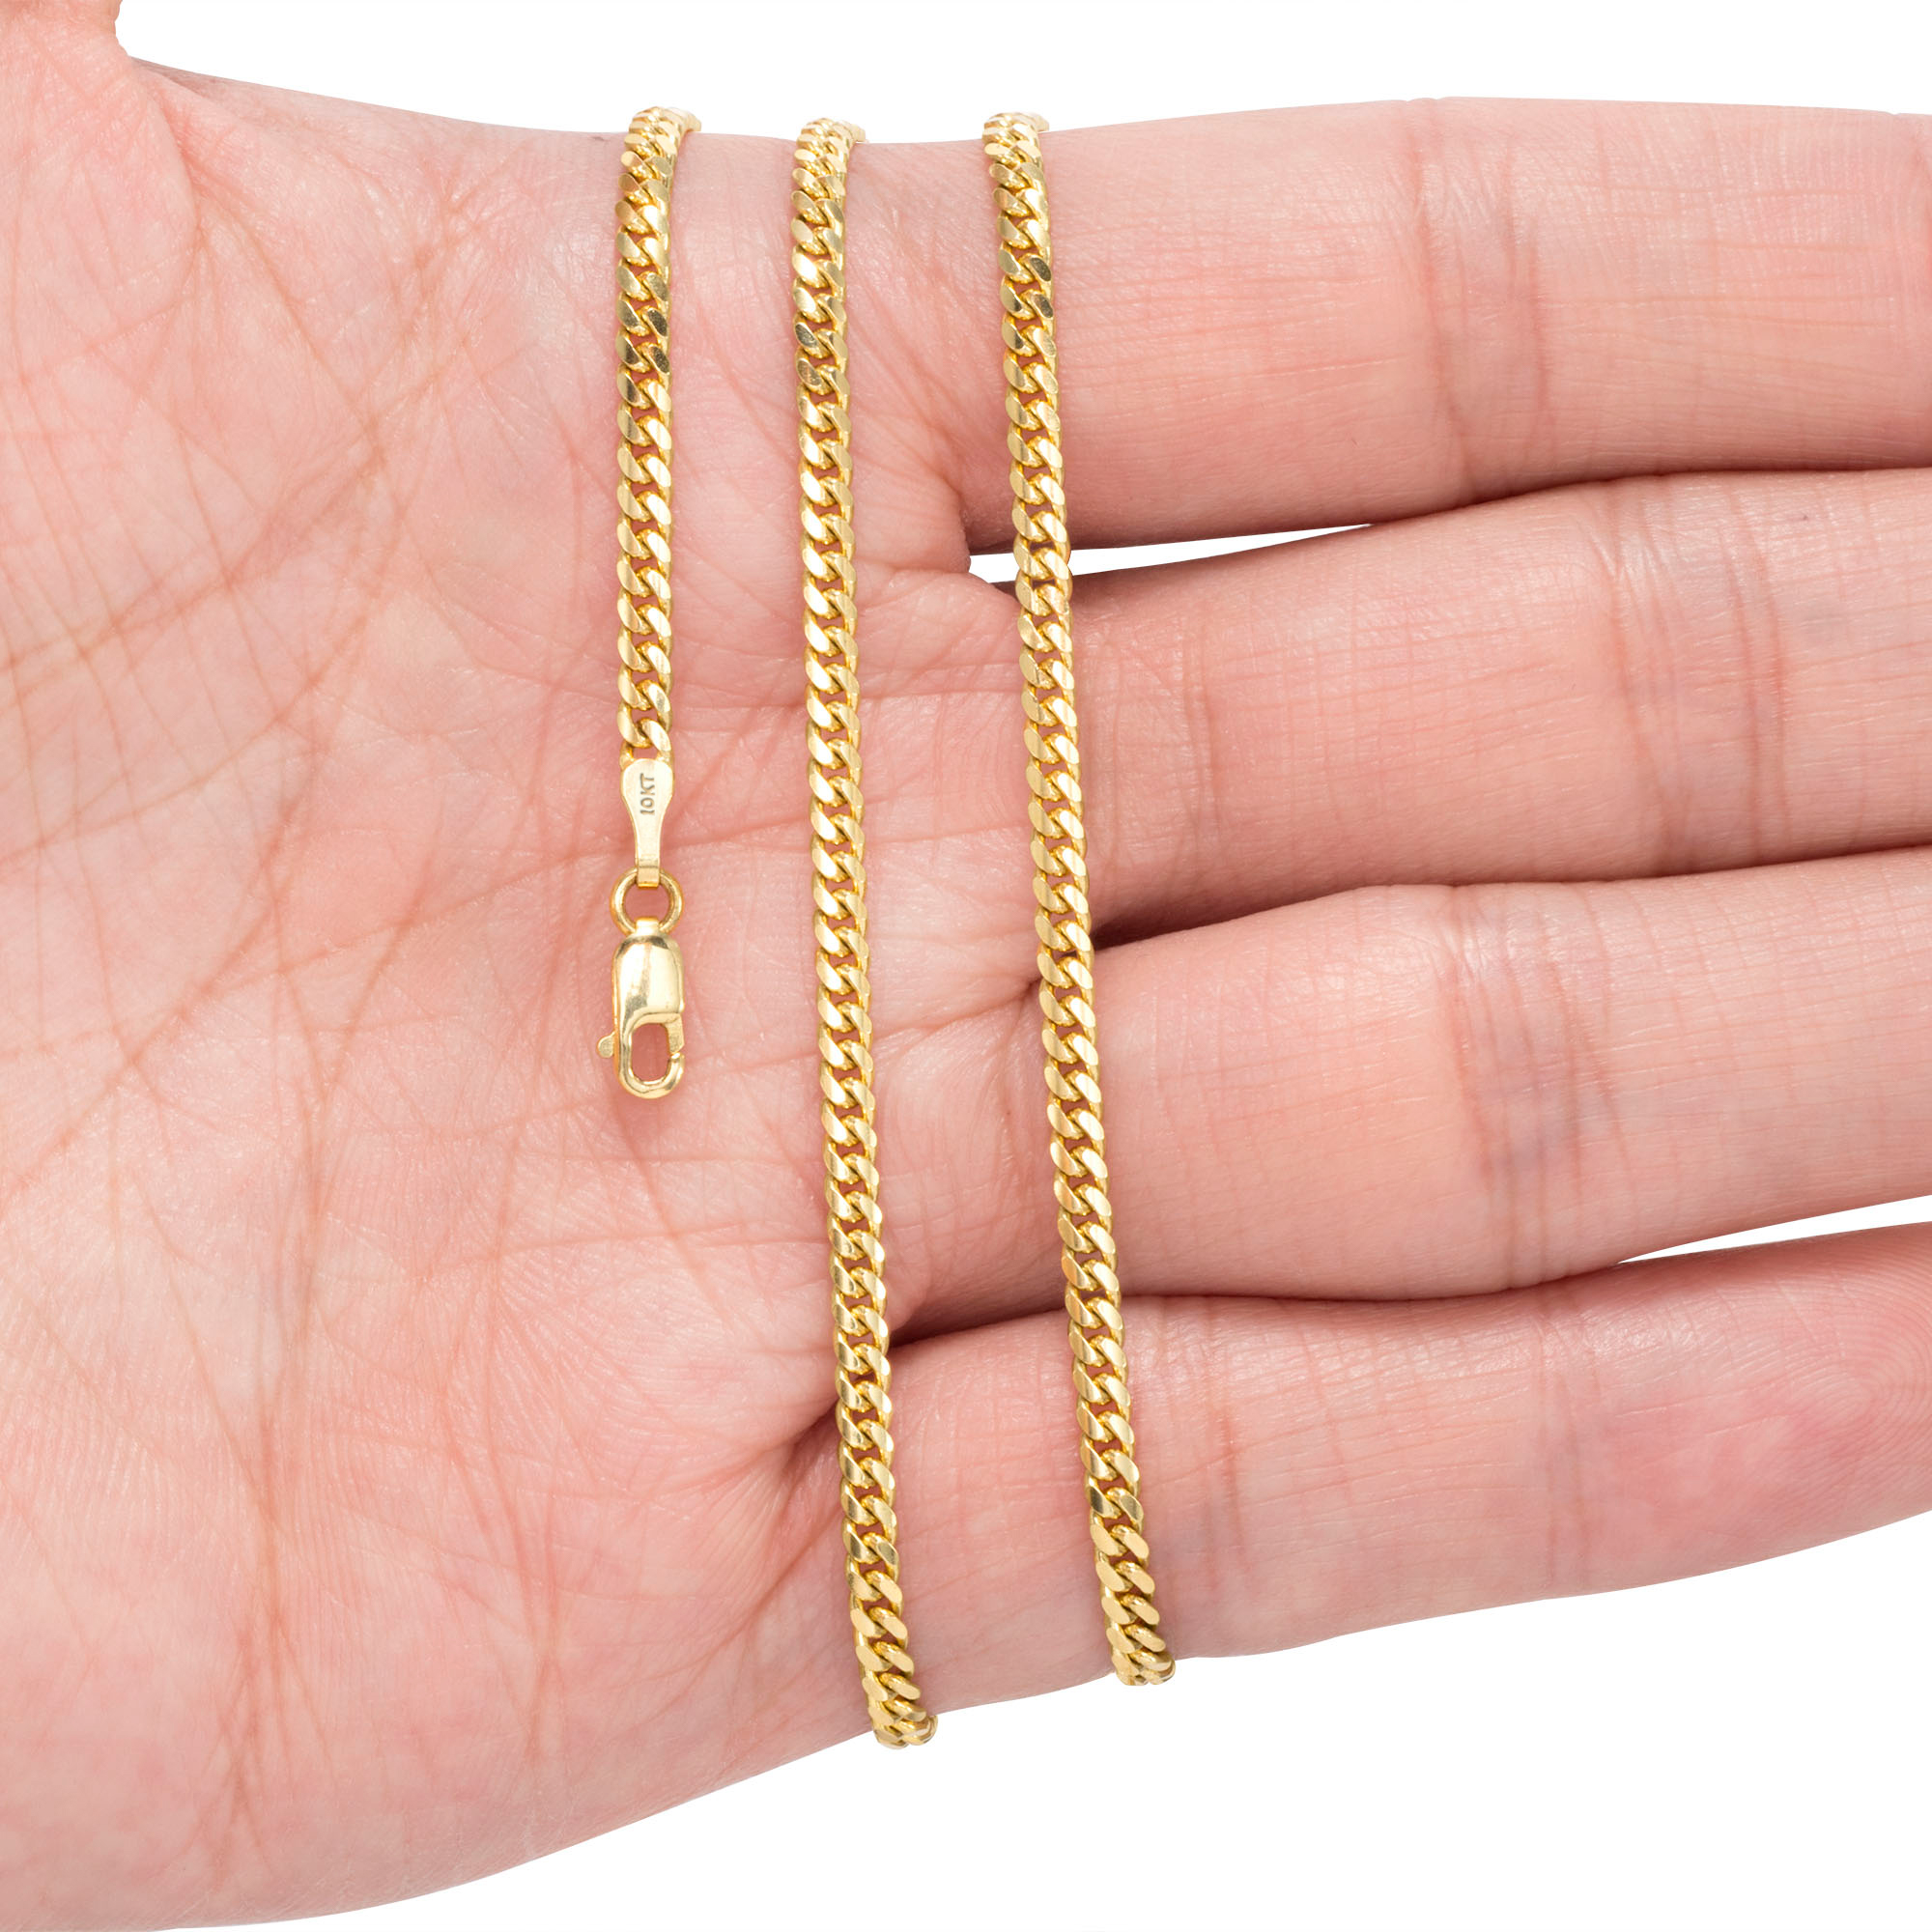 10K-Yellow-Gold-Solid-2-7mm-10mm-Miami-Cuban-Link-Chain-Necklace-Bracelet-7-034-30-034 thumbnail 14